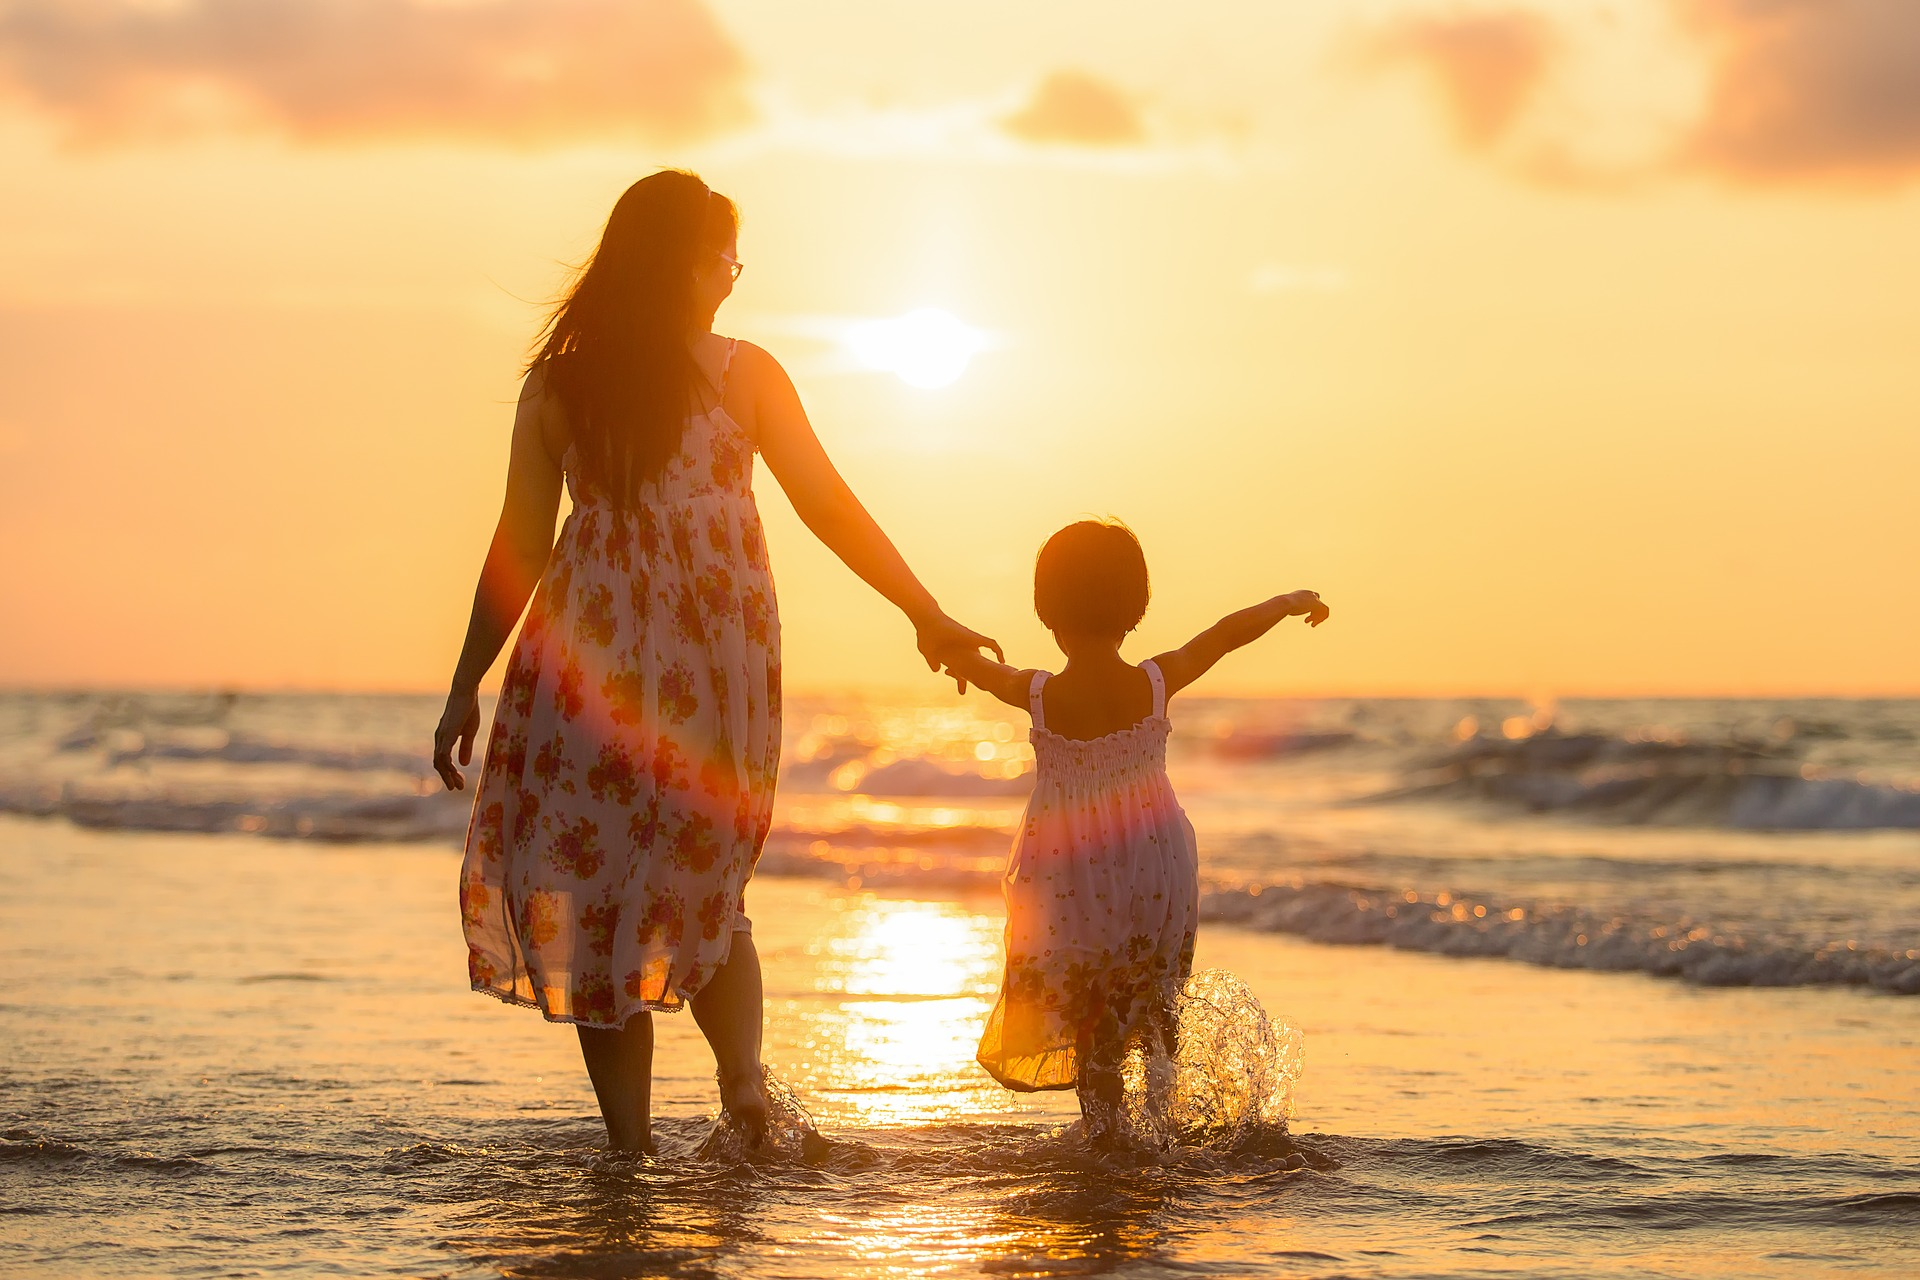 A mother and daughter on the beach